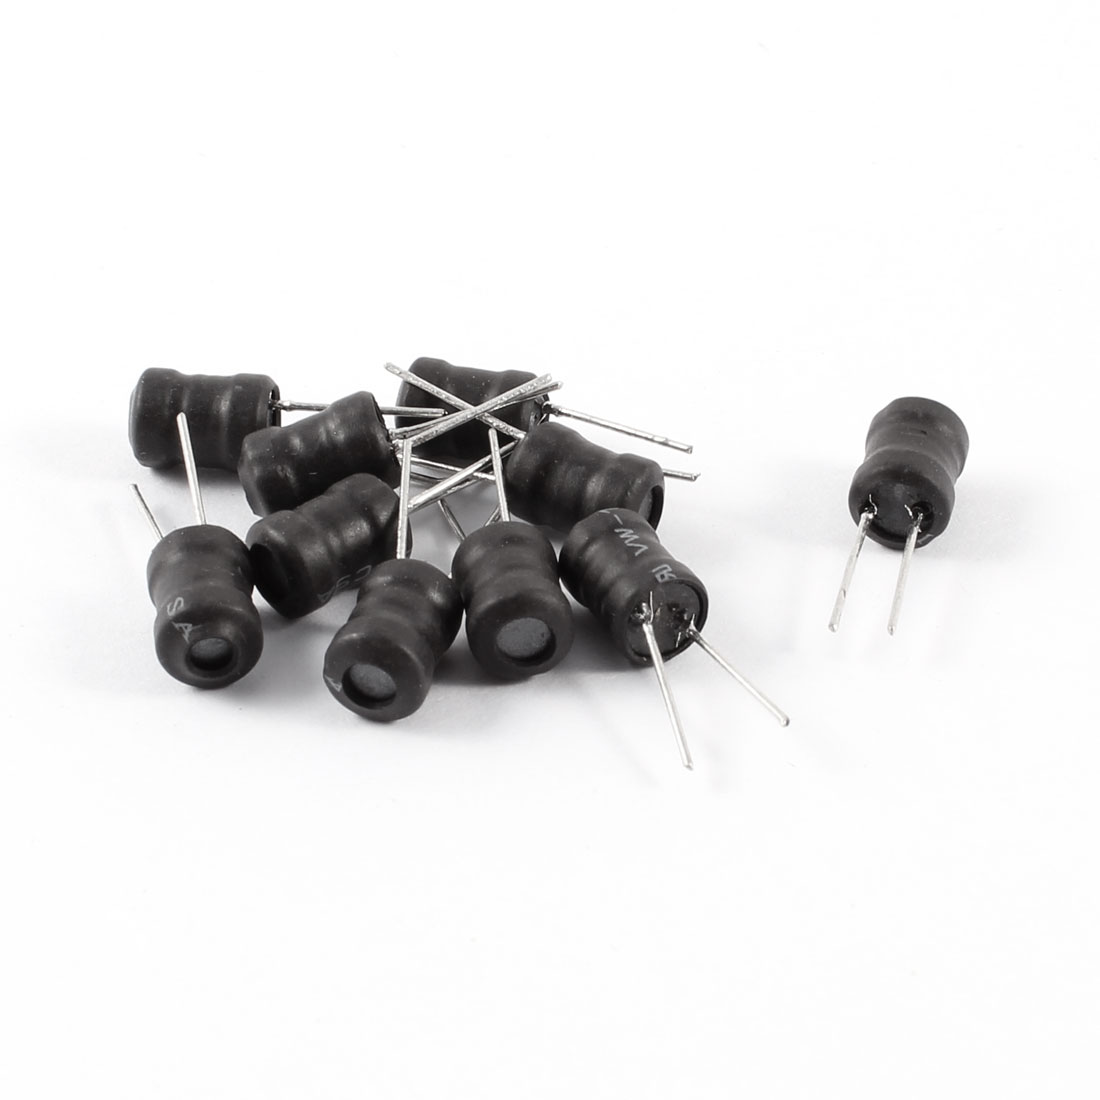 10 Pcs Magnetic Core 20MH Radial Leads 6x8 6mm x 8mm Inductors